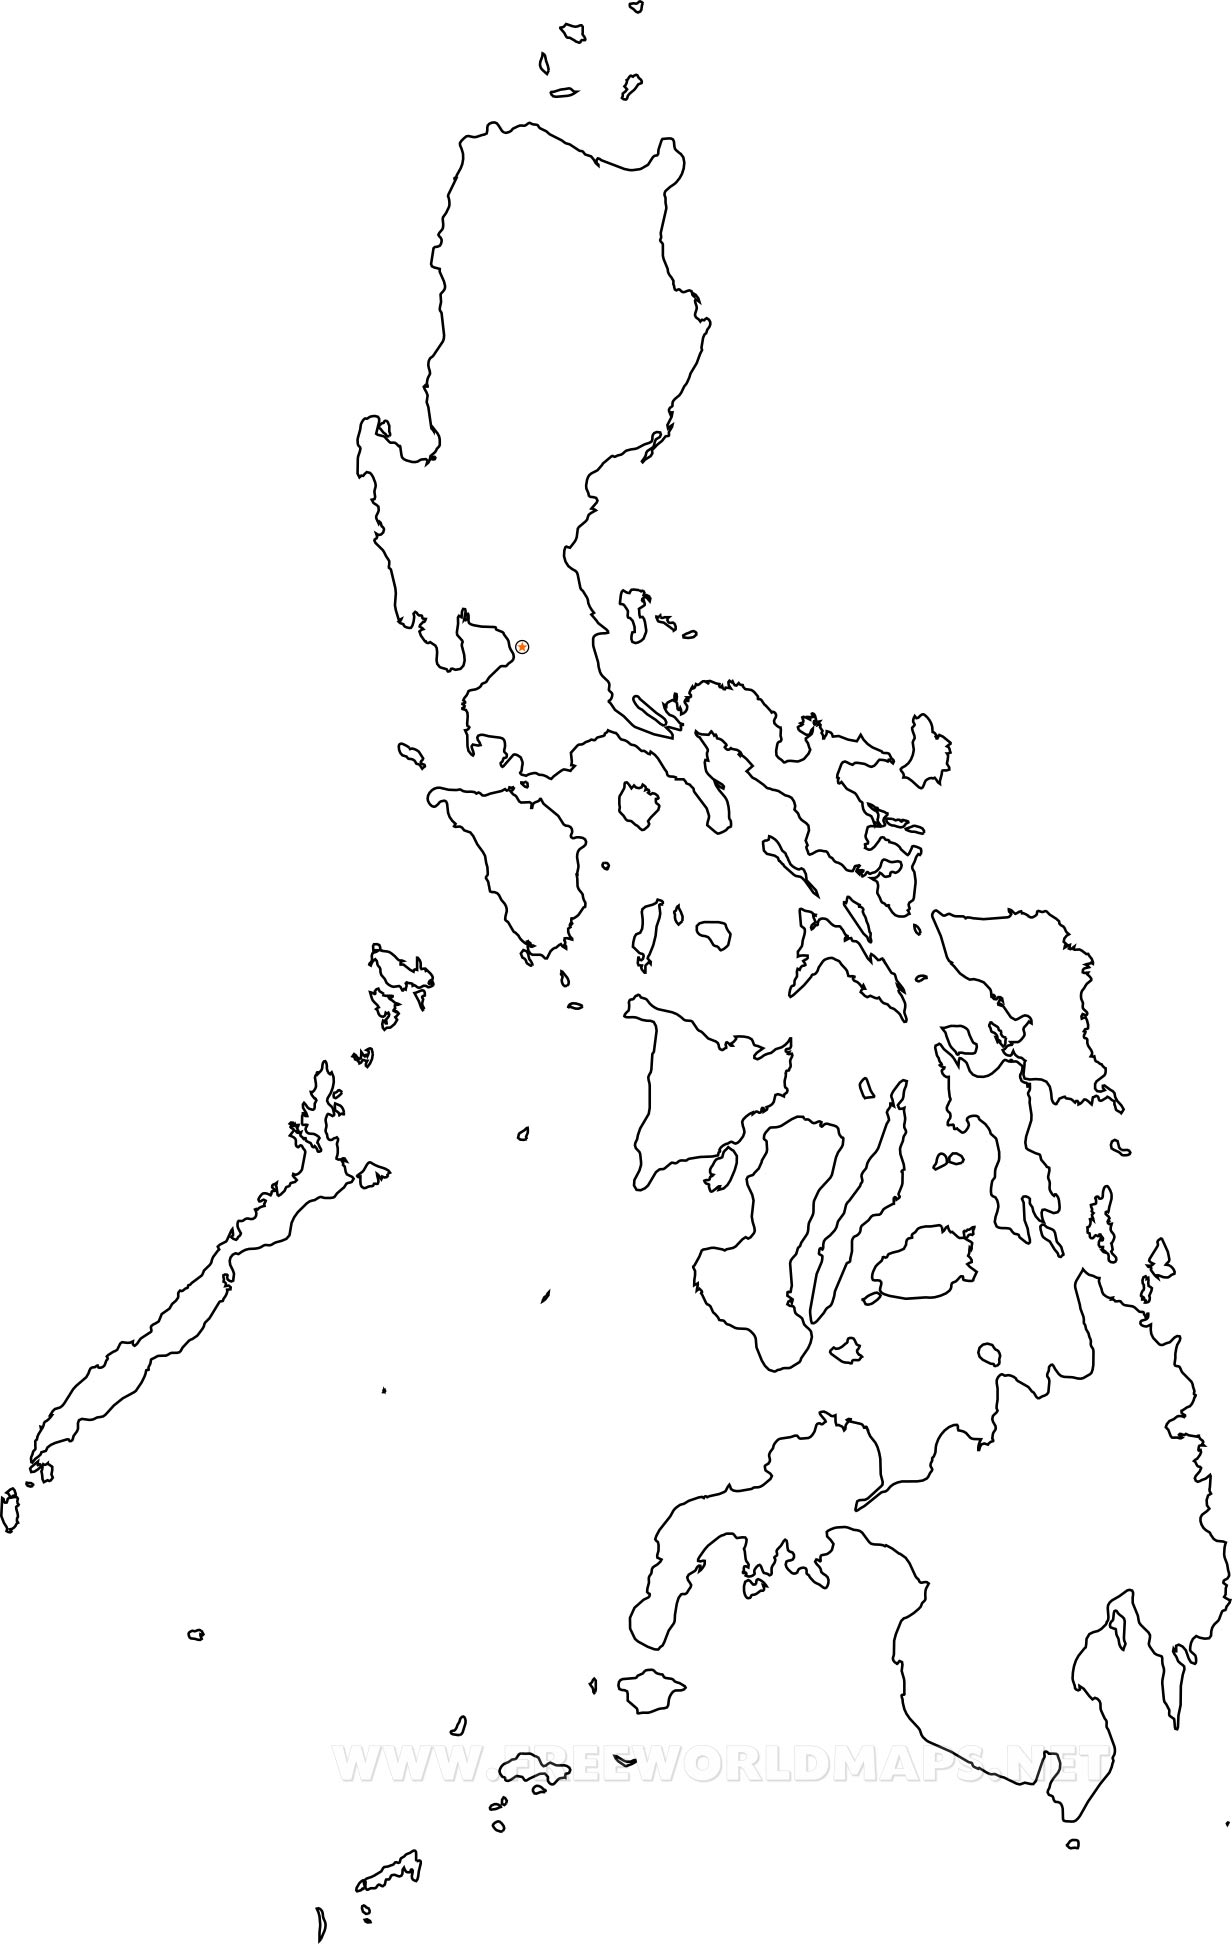 Philippine Drawing At Getdrawings